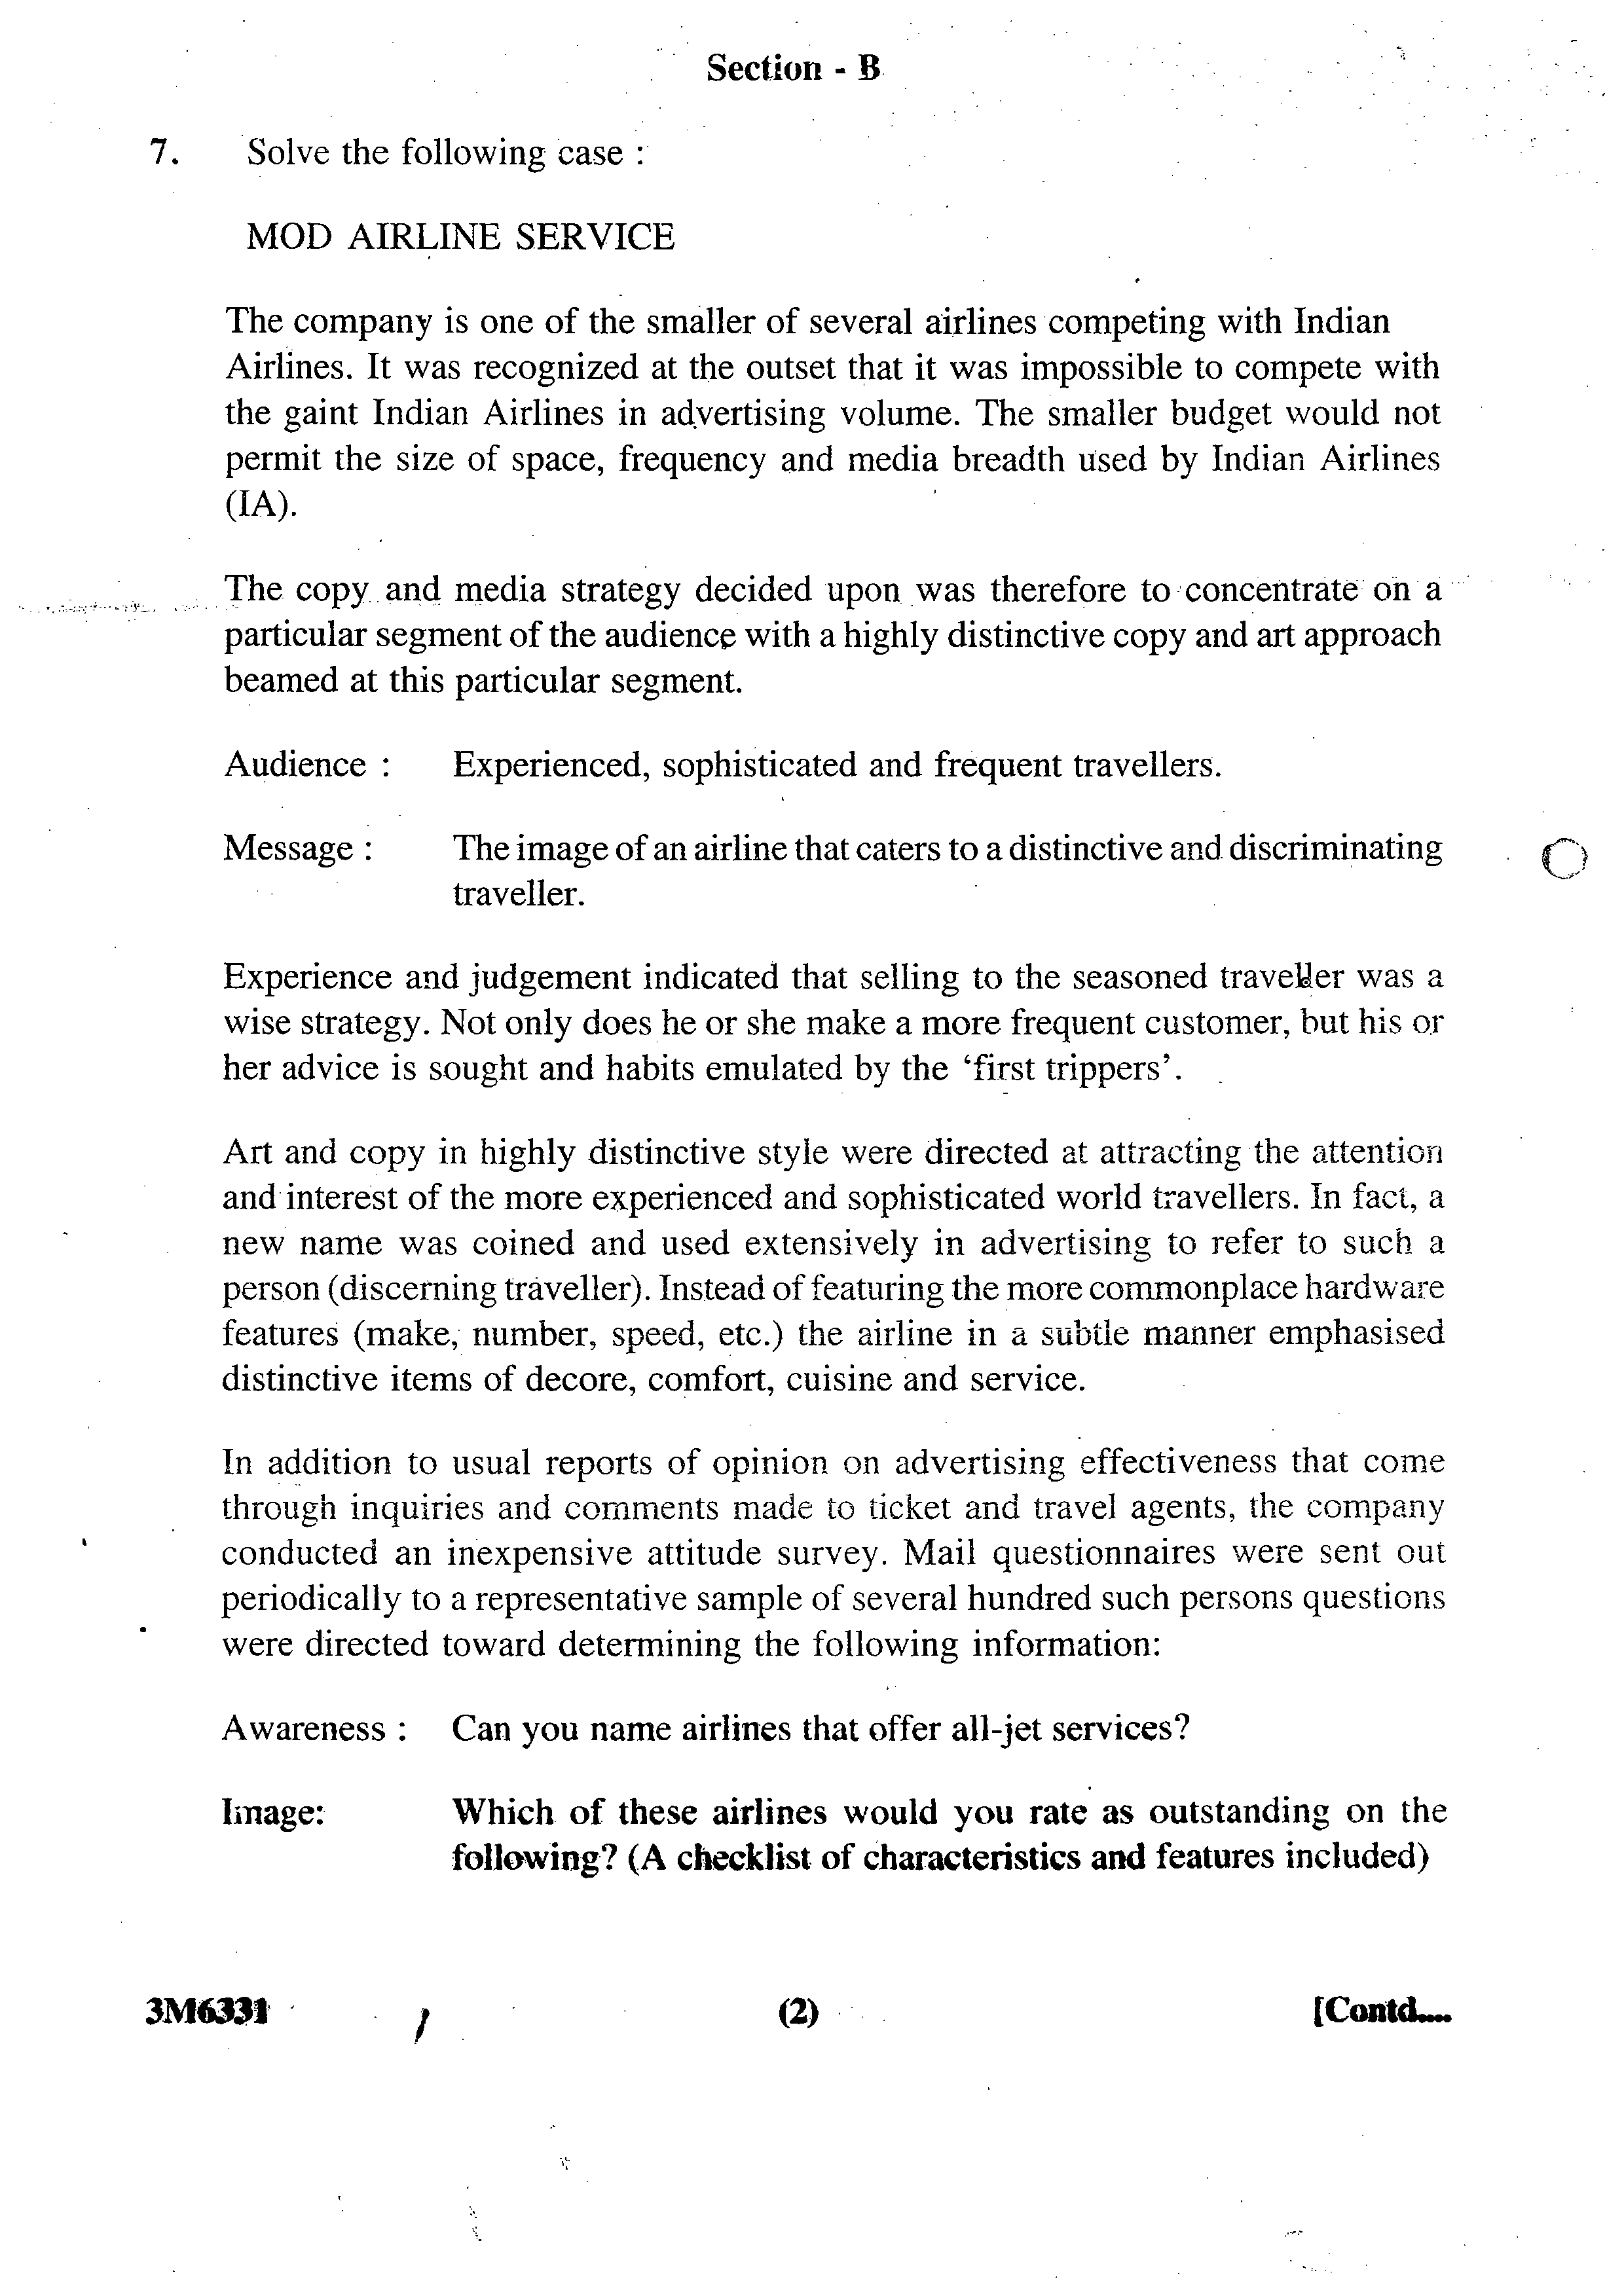 System analysis and design assignment questions